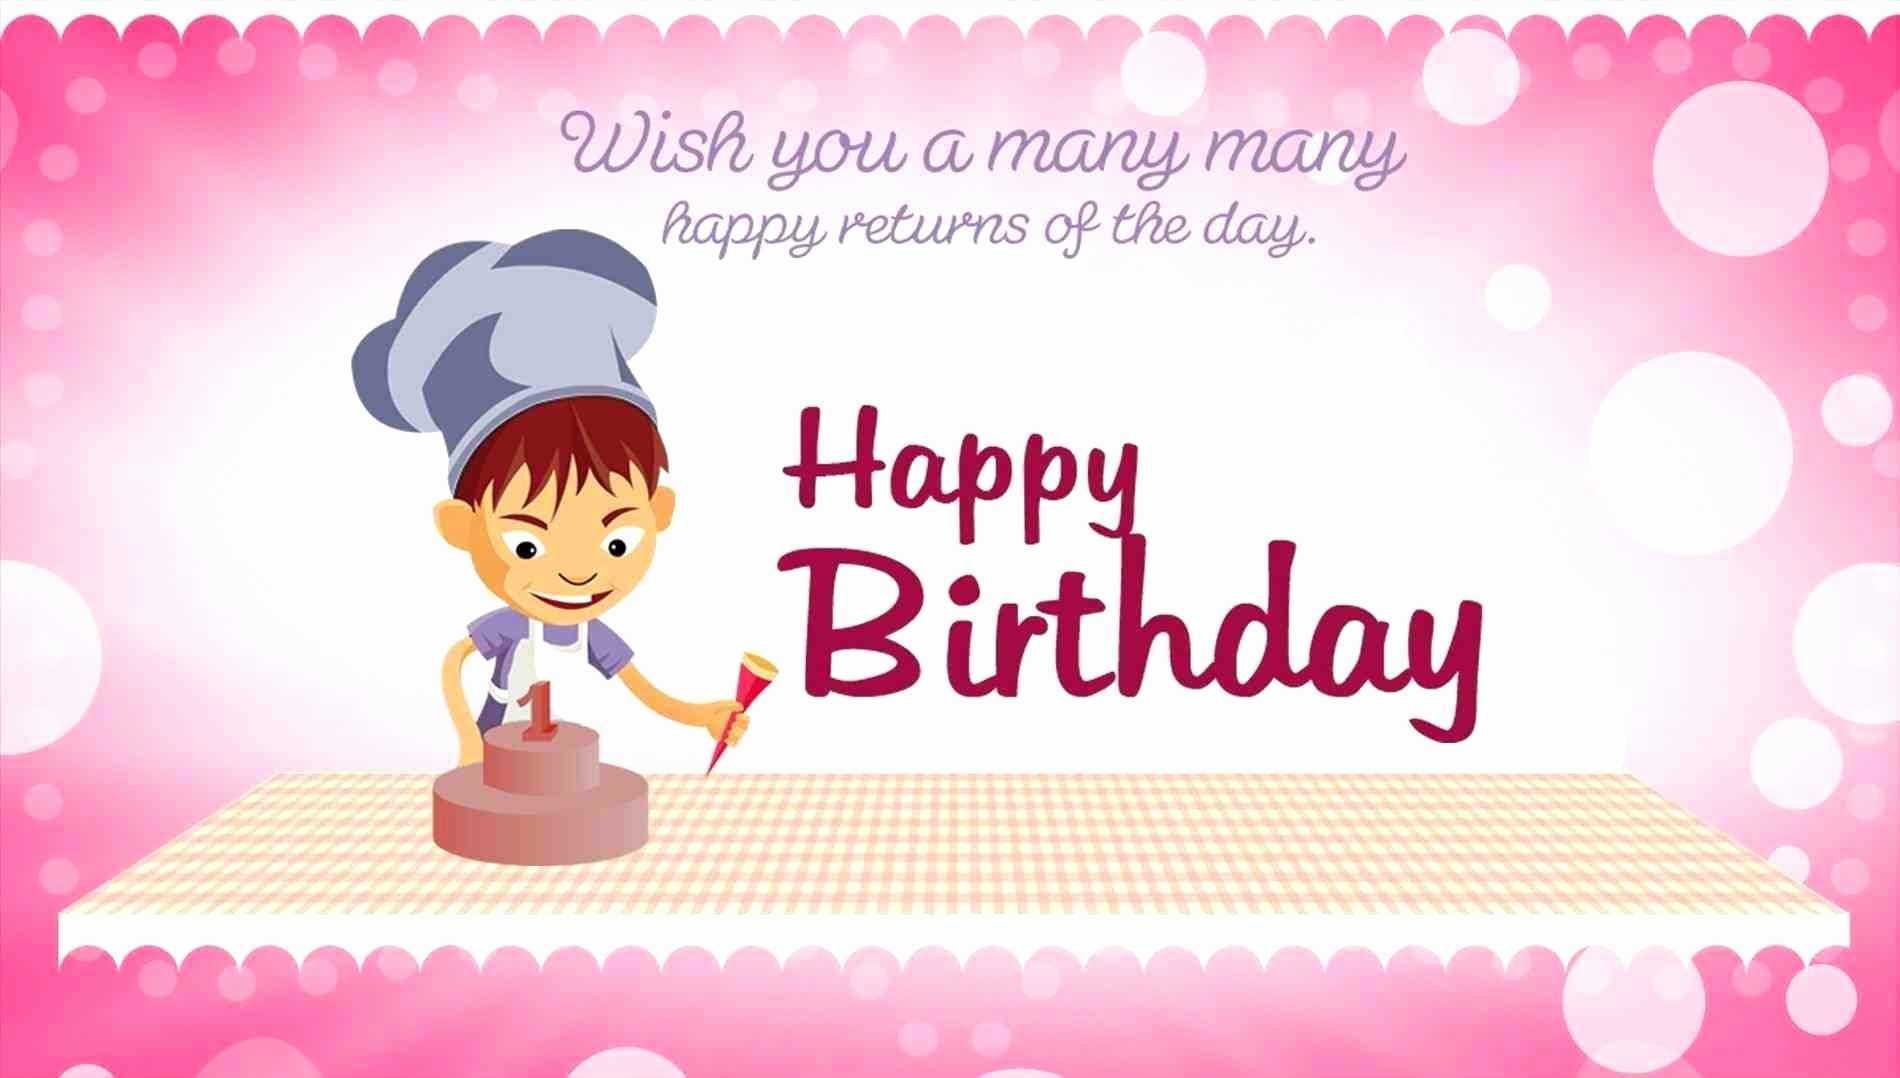 birthday card maker with name ; birthday-card-maker-with-name-online-birthday-card-maker-beautiful-line-birthday-card-maker-with-name-awesome-happy-of-online-birthday-card-maker